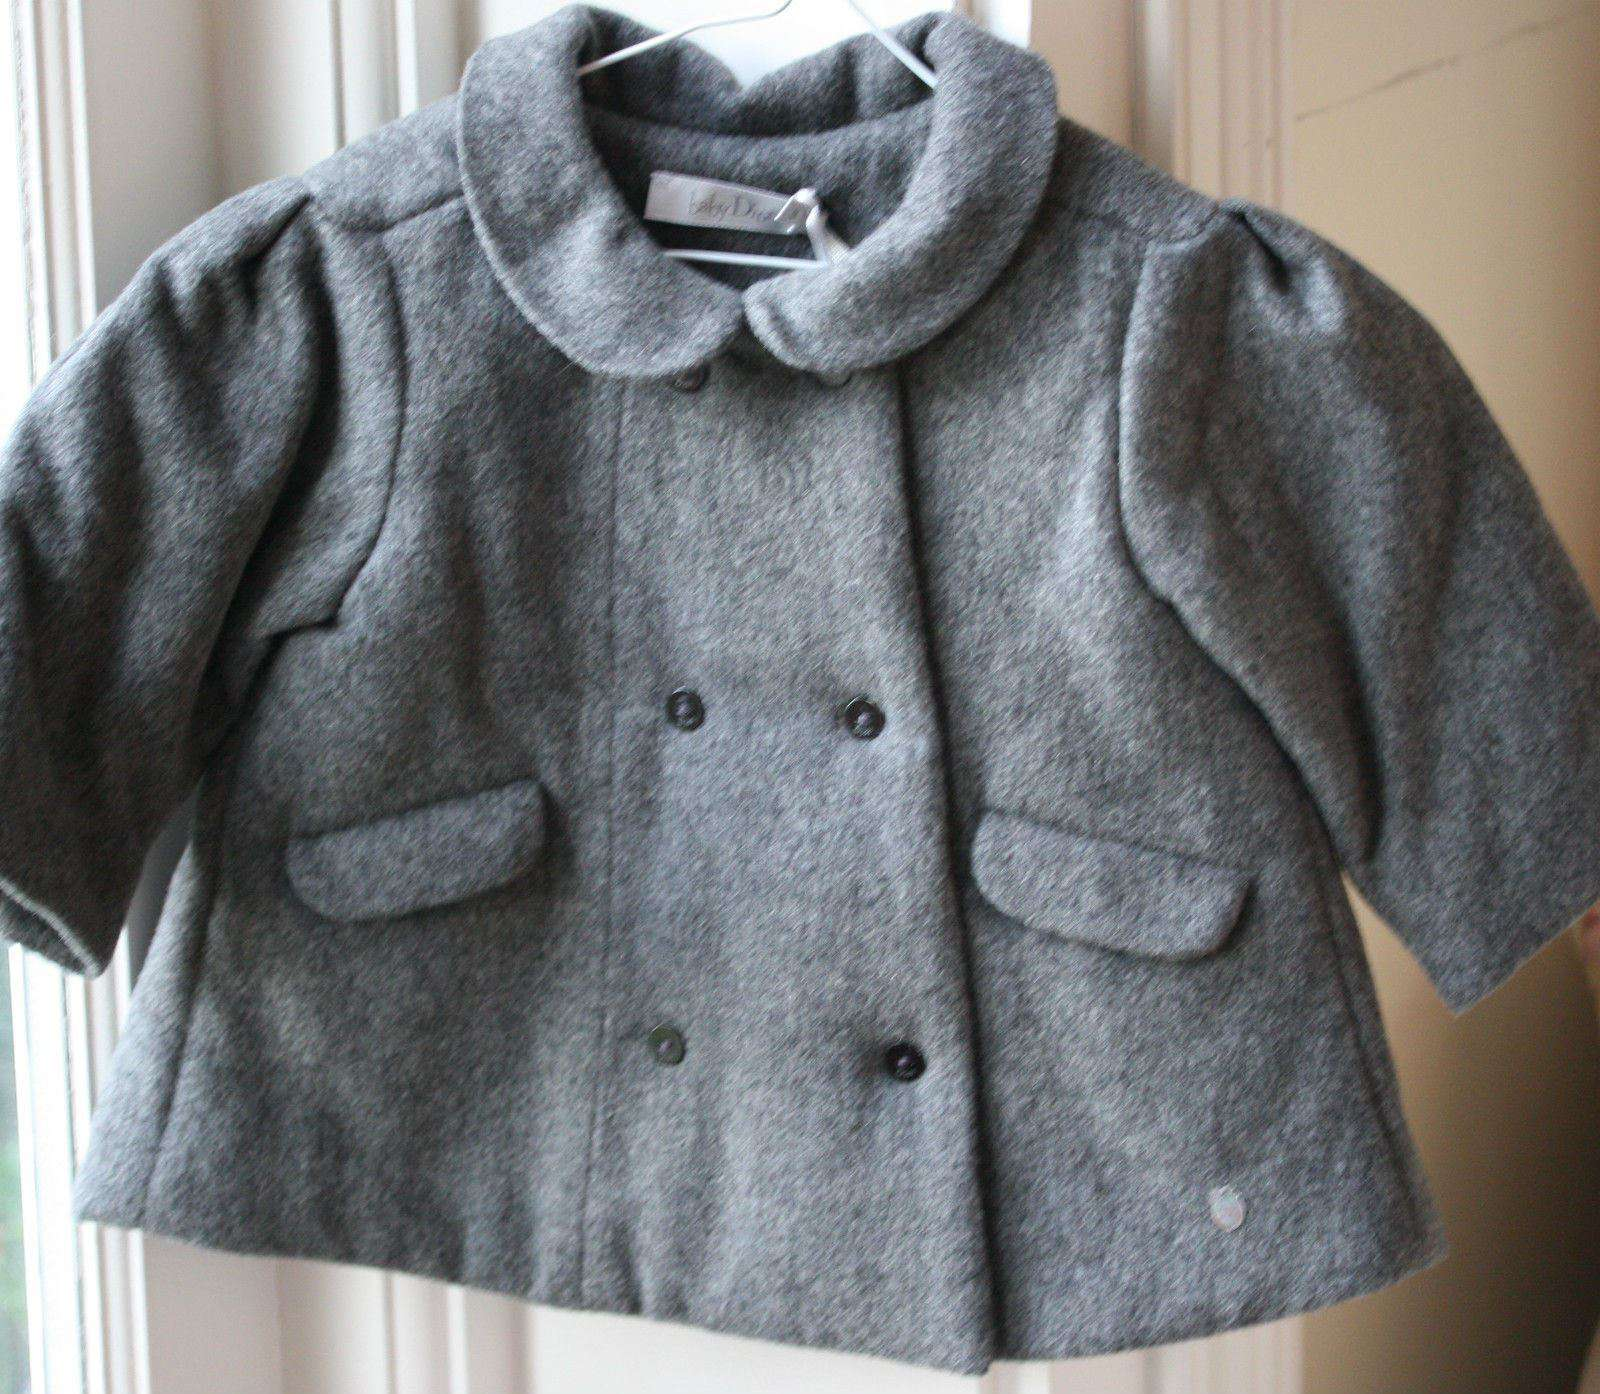 BABY DIOR GREY CASHMERE BLEND PADDED COAT 9 MONTHS